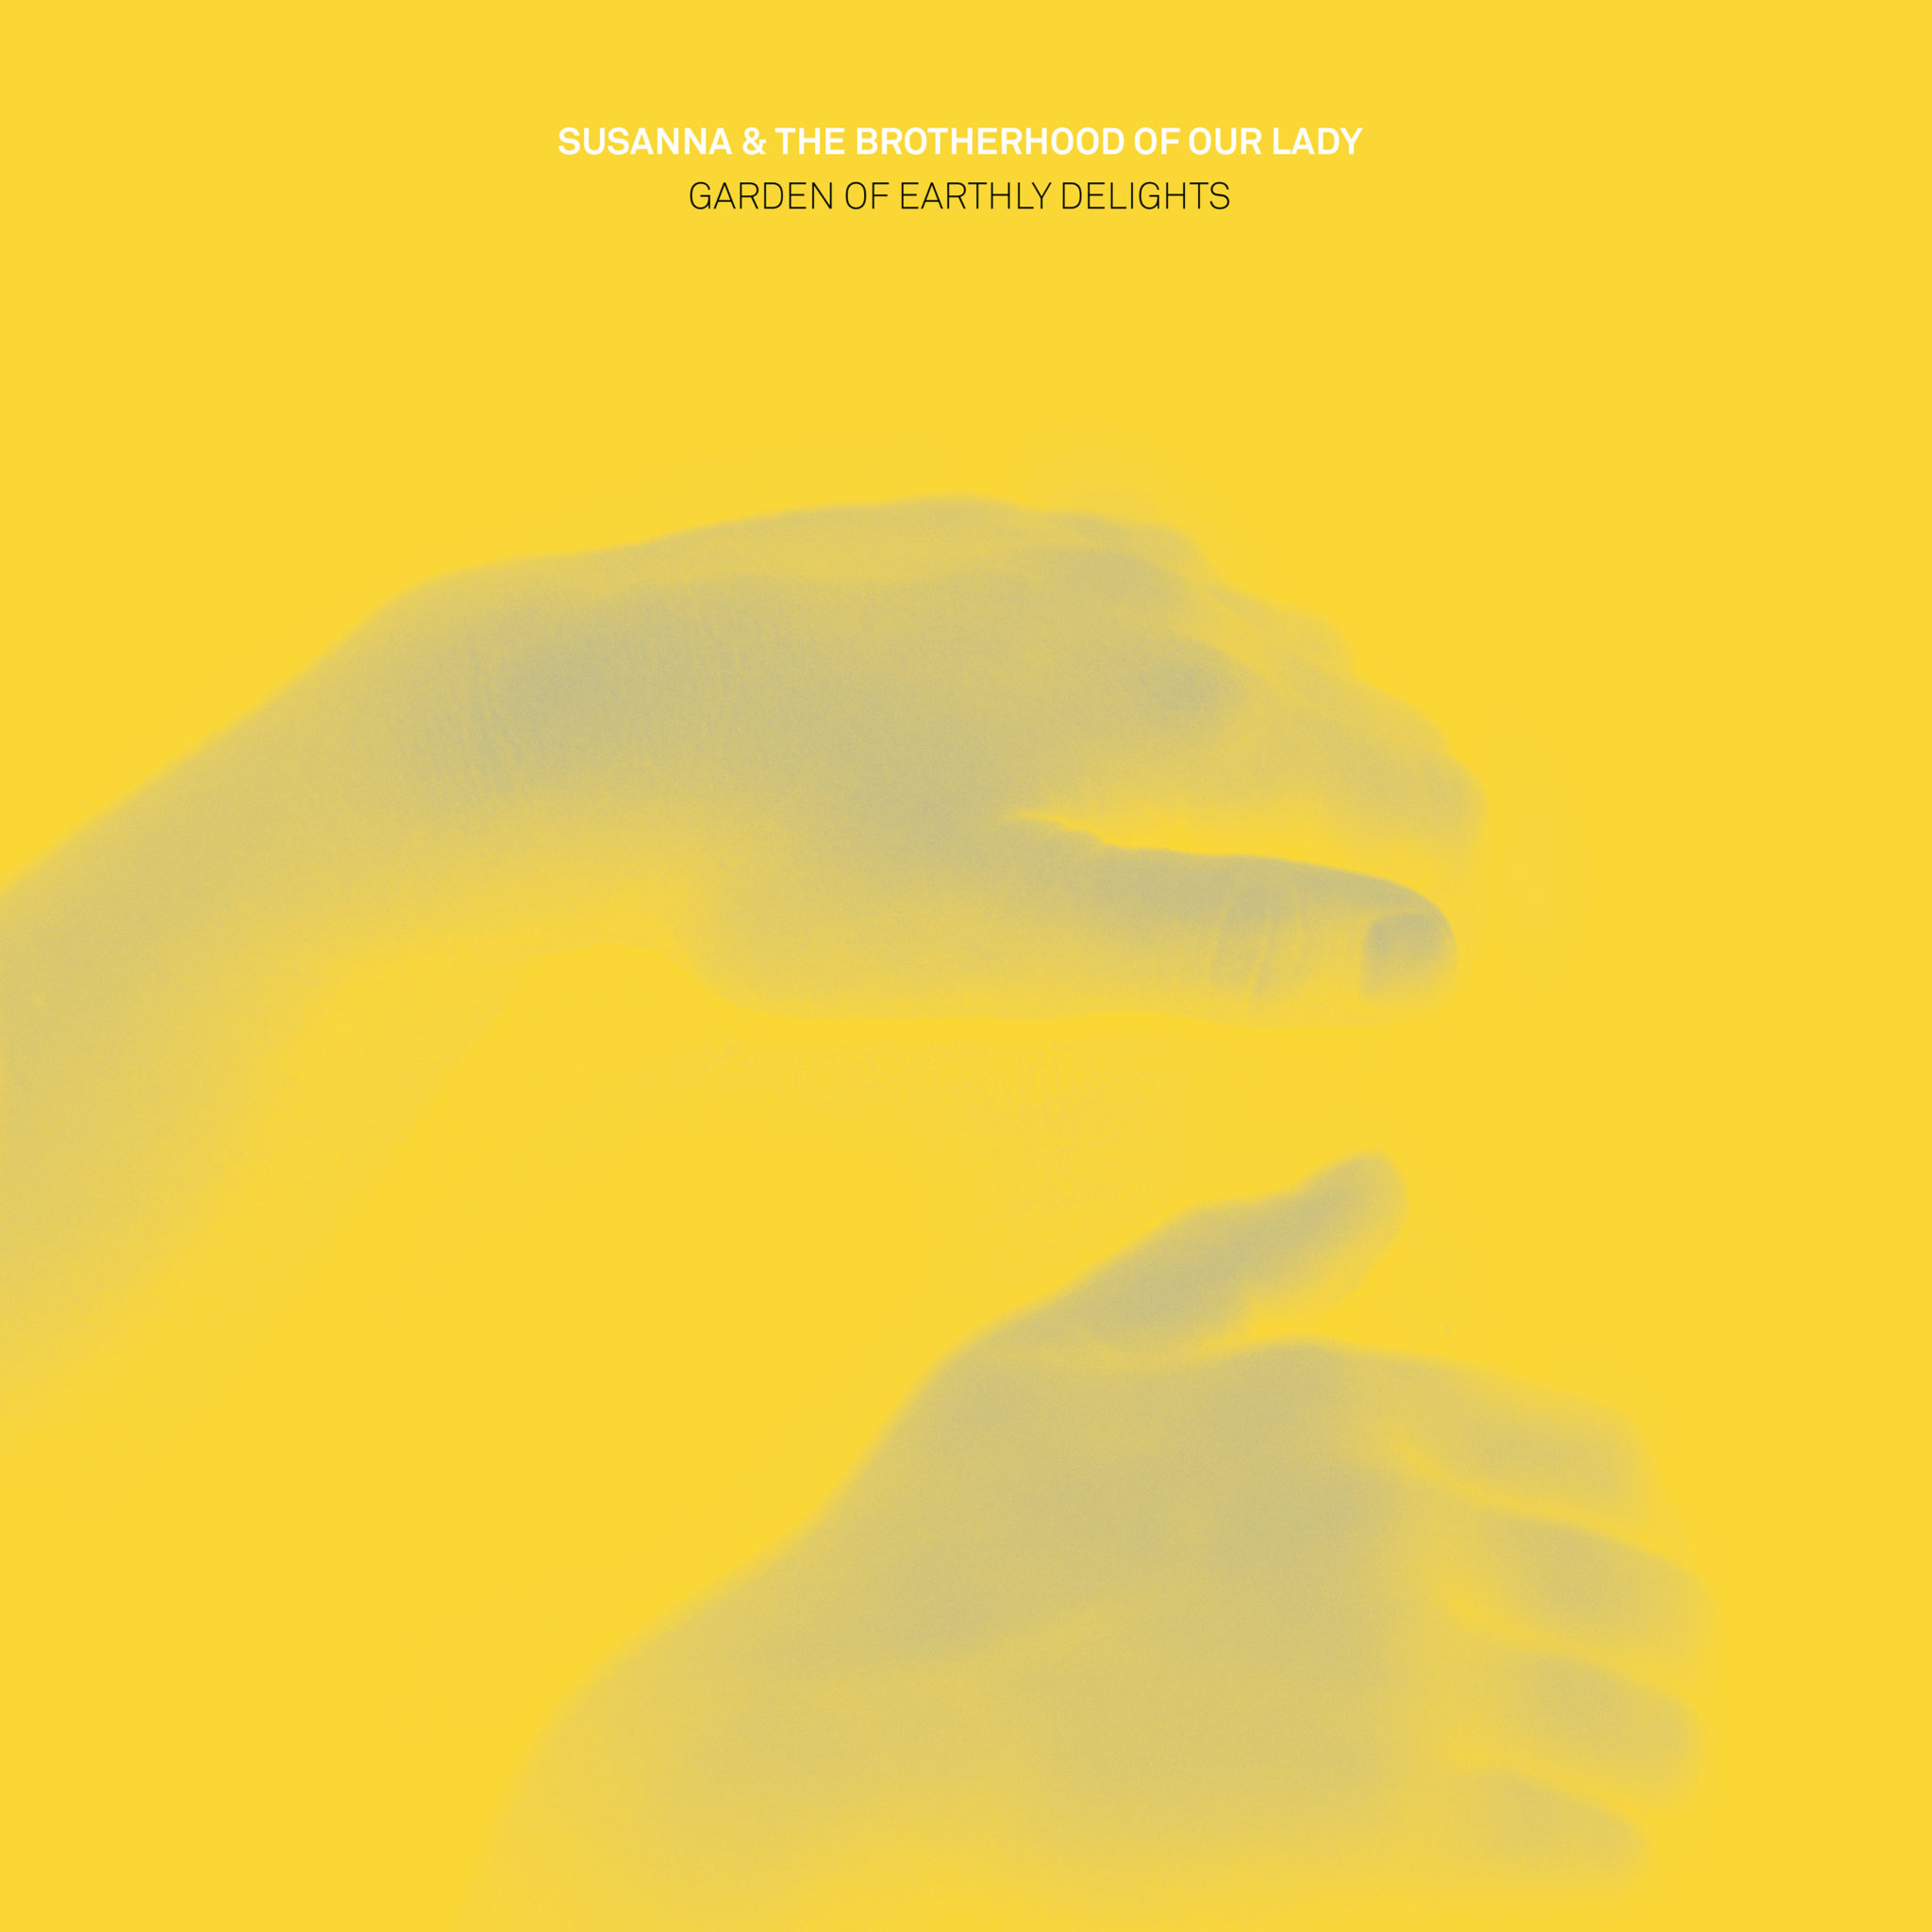 Garden of Earthly Delights - Susanna & the Brotherhood of Our Lady  (CD/VINYL)